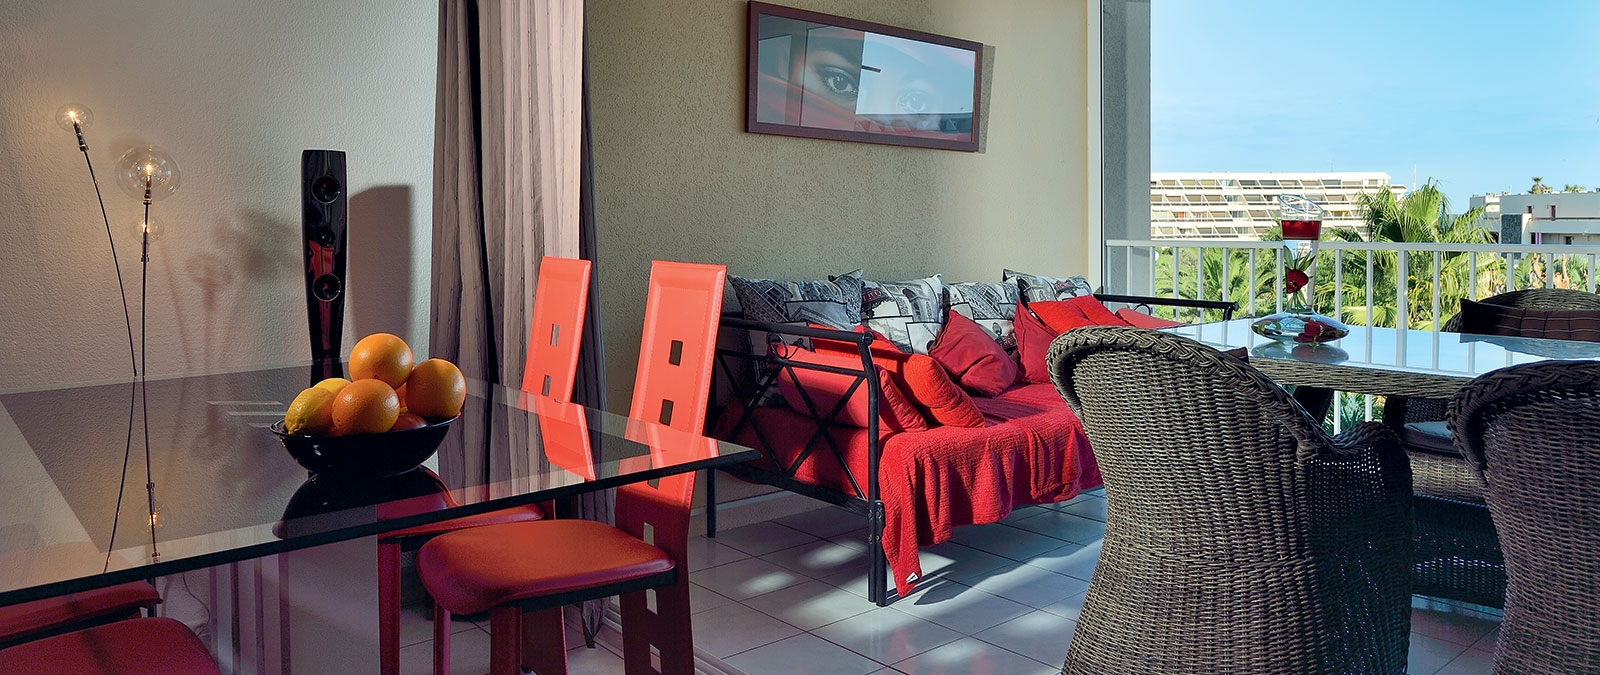 Rubis libertine apartment for rent